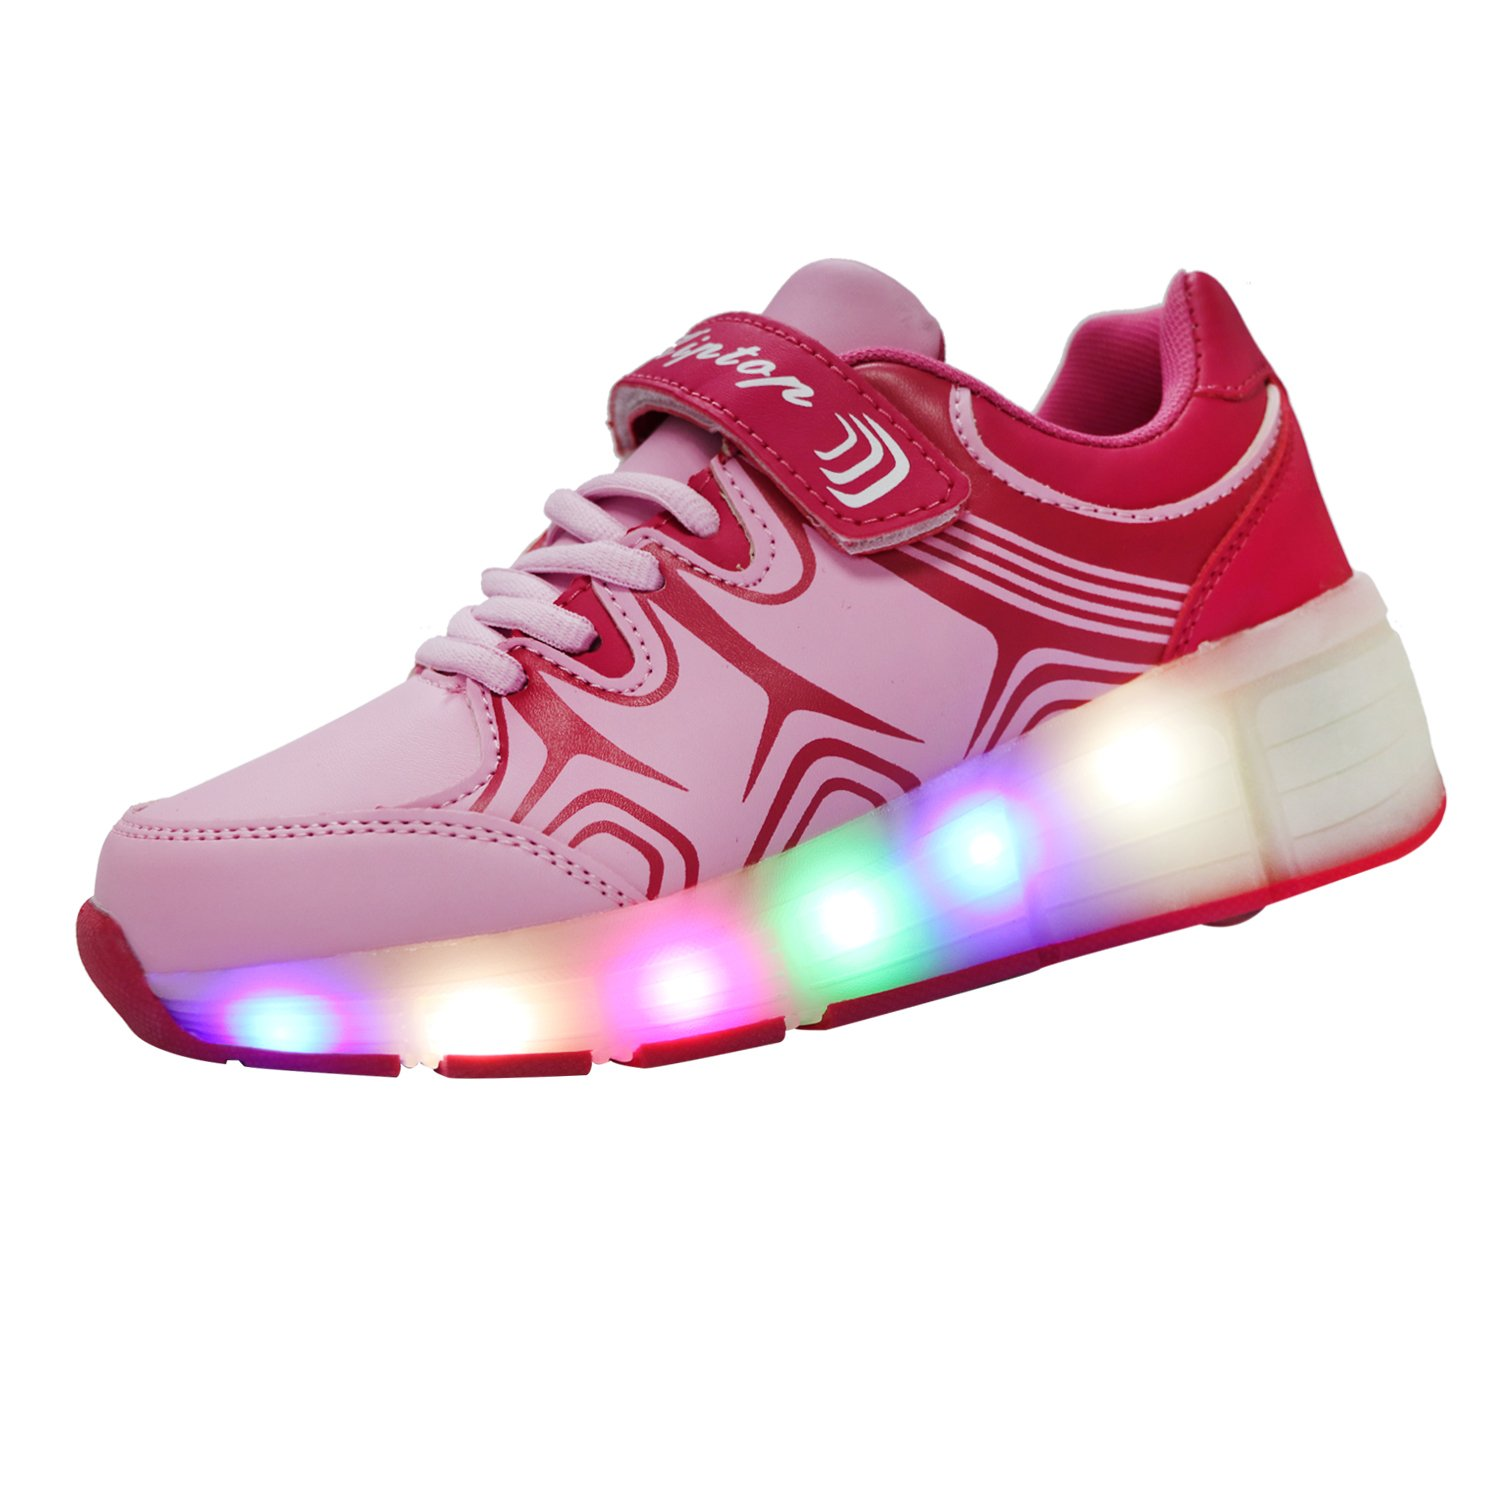 Roller shoes london - Kiptop Kids Led Flashing Lights Sneakers Roller Shoes Trainers For Boys Girls Without Usb